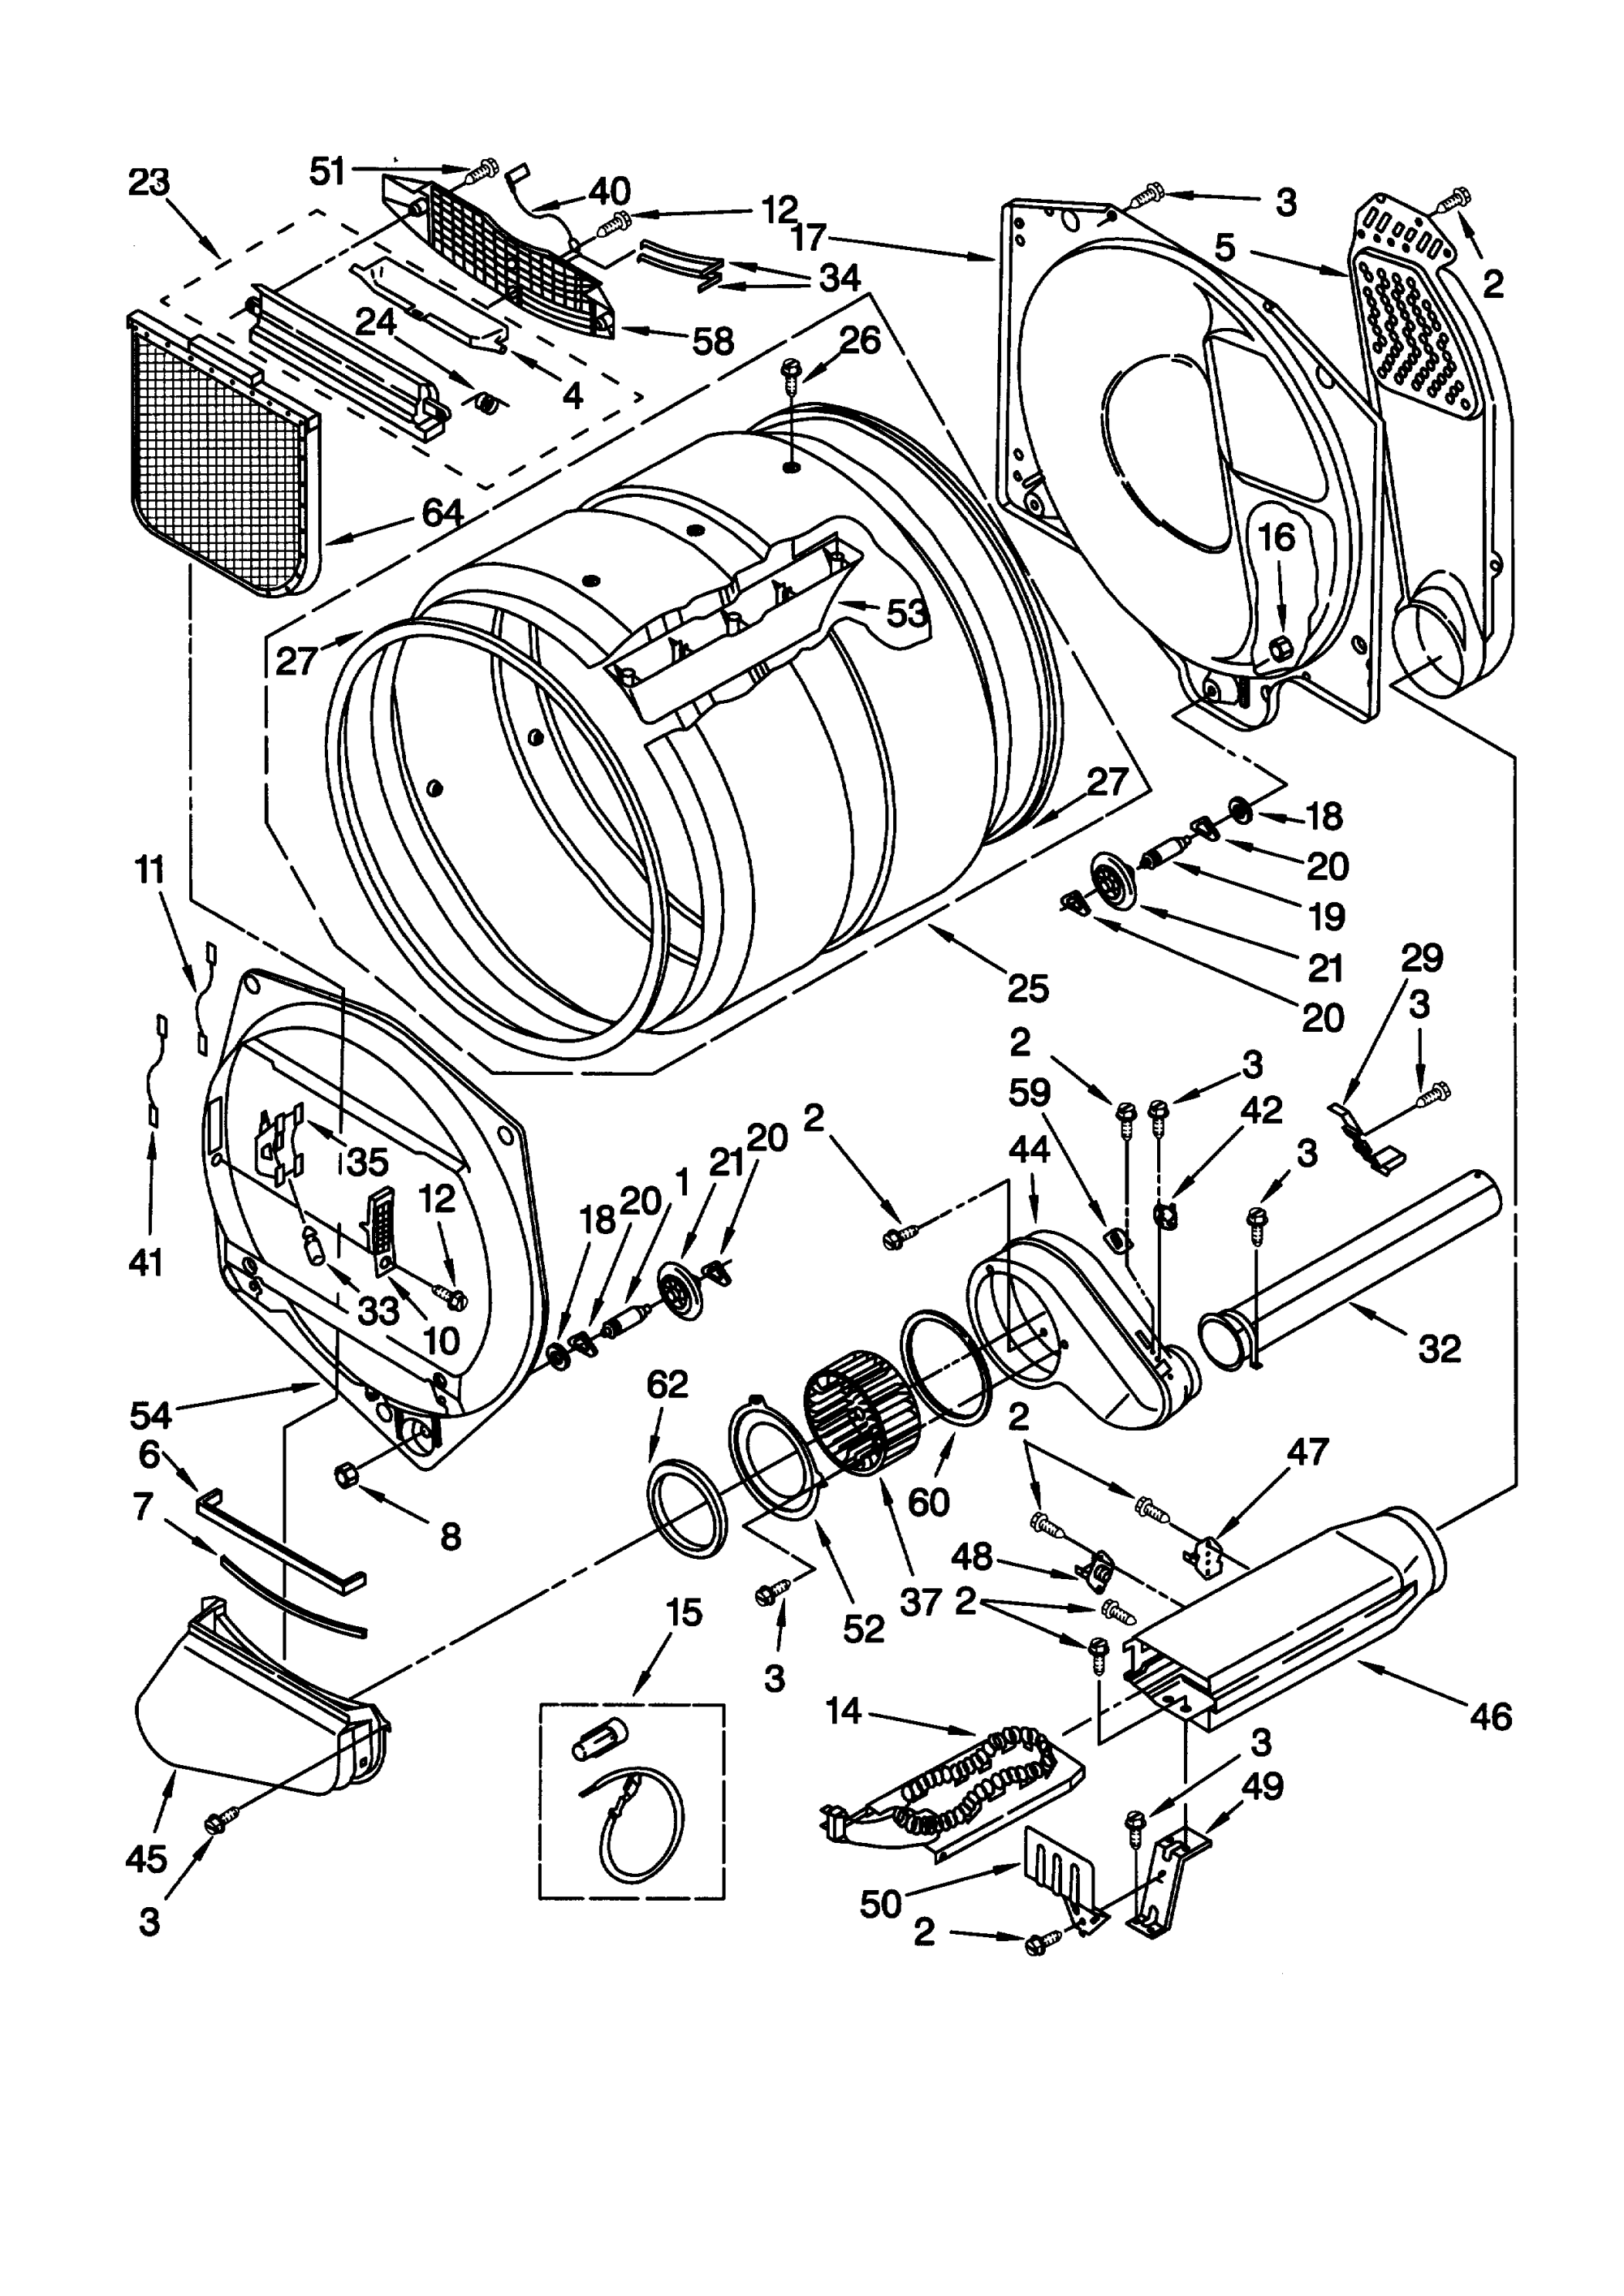 hight resolution of kenmore model 11068972892 residential dryer genuine parts roper dryer parts diagram kenmore 110 dryer parts diagram